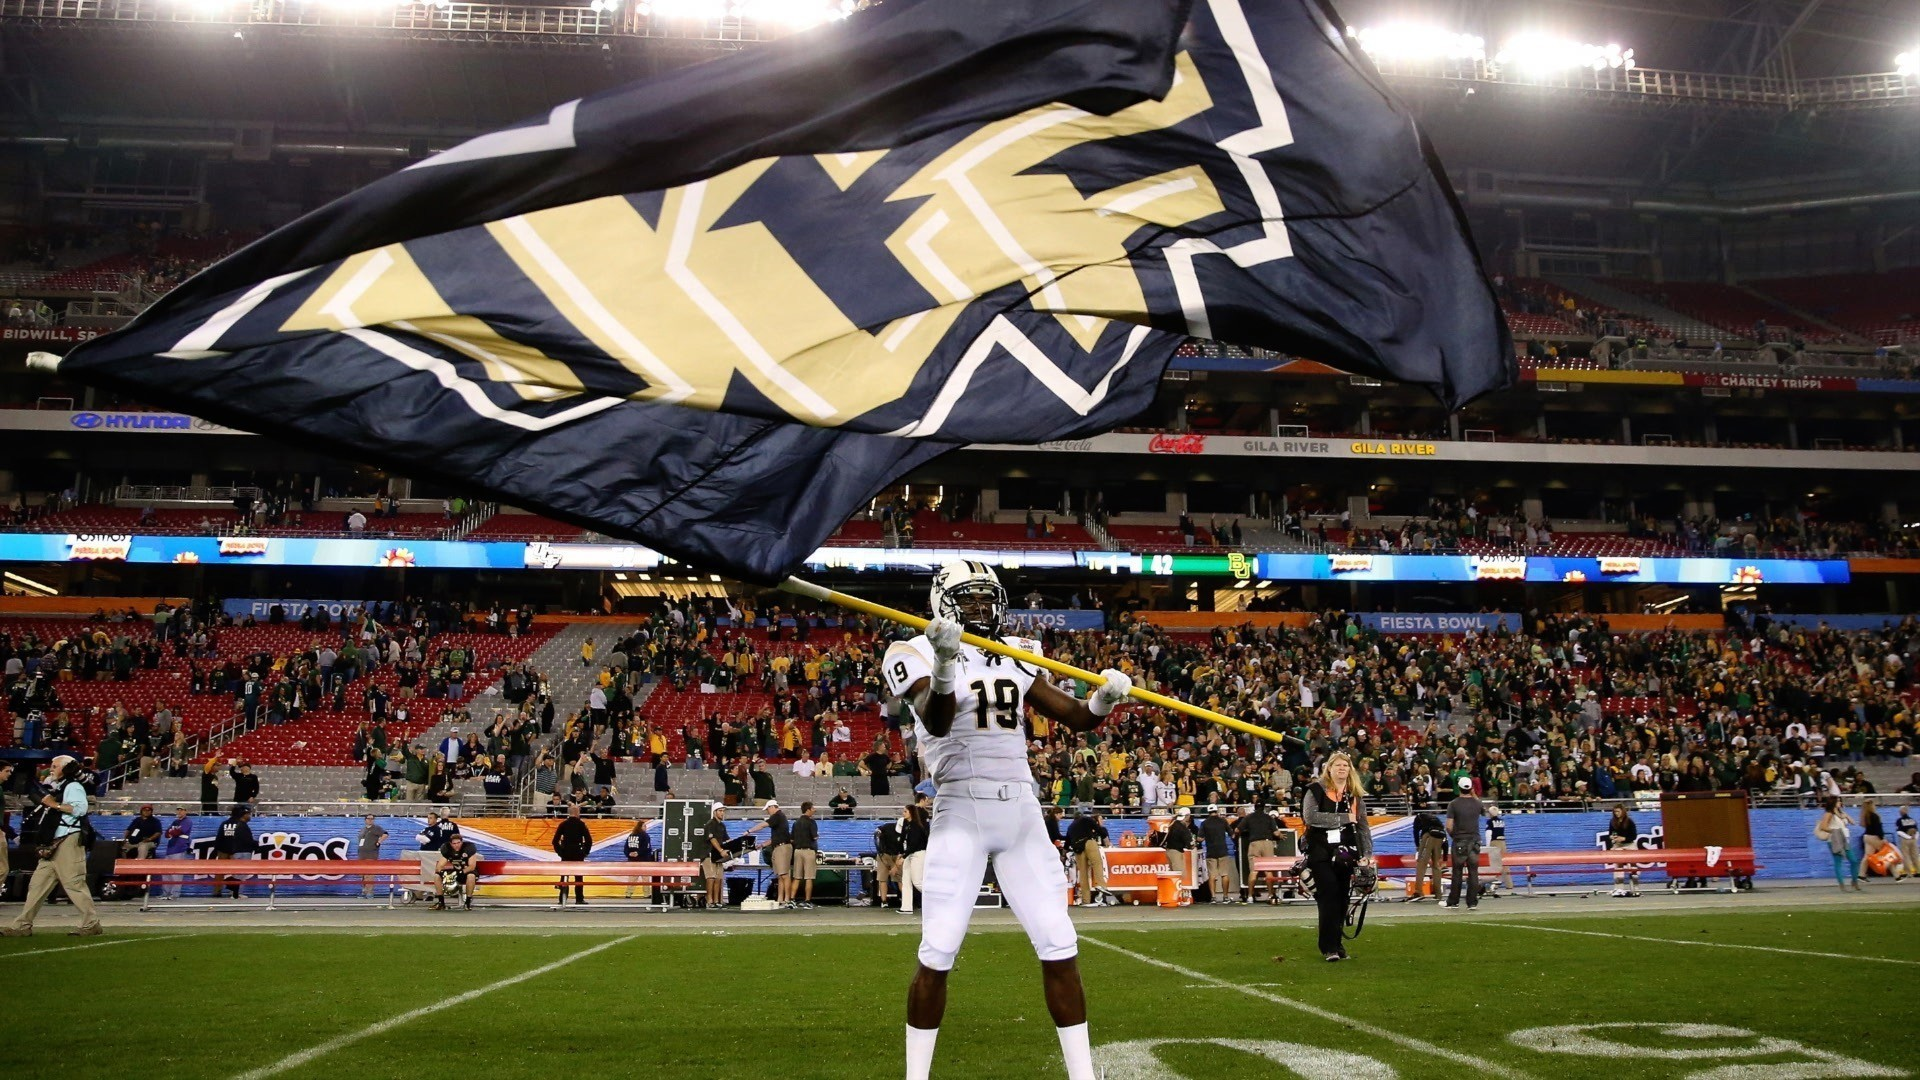 How well do you know the UCF football team? A quick quiz ...